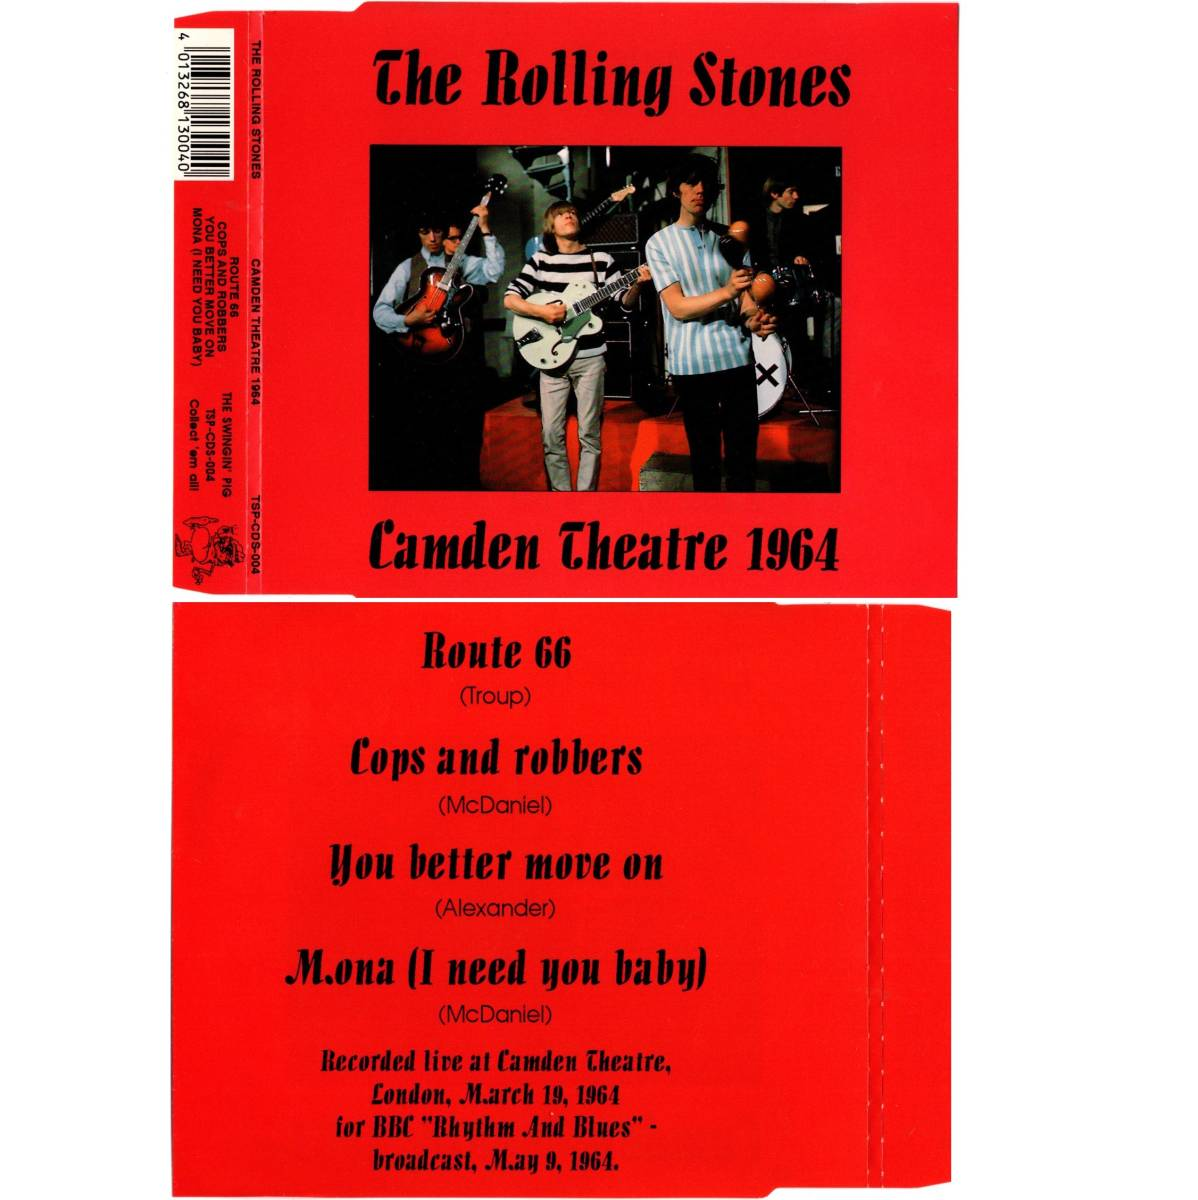 The Rolling Stones/ IBC Demos 1963 +Chess Chicago Outtakes 1964 +Cops And Robbers +Camden Theatre 1964 / TSP / 計4プレスCDシングル